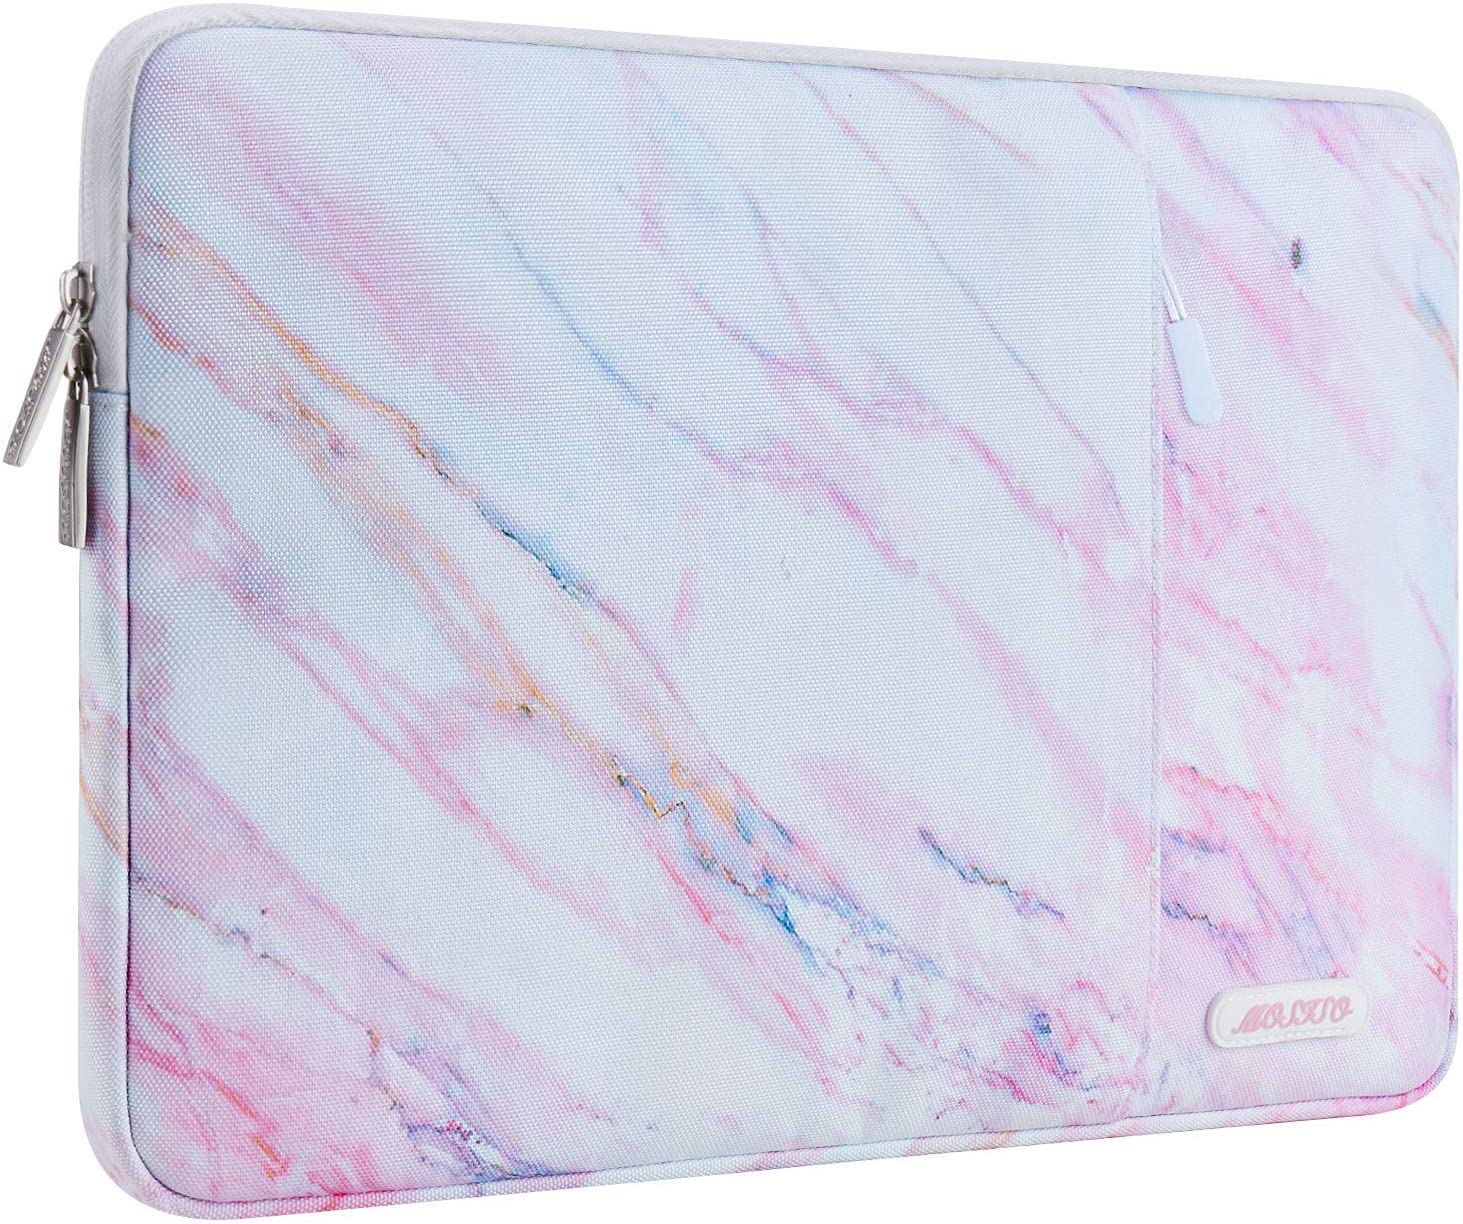 MOSISO Laptop Sleeve Compatible with 2018-2020 MacBook Air 13 inch A2179 A1932, 13 inch MacBook Pro A2251 A2289 A2159 A1989 A1706 A1708, Polyester Vertical Cross Grain Marble Carrying Bag with Pocket